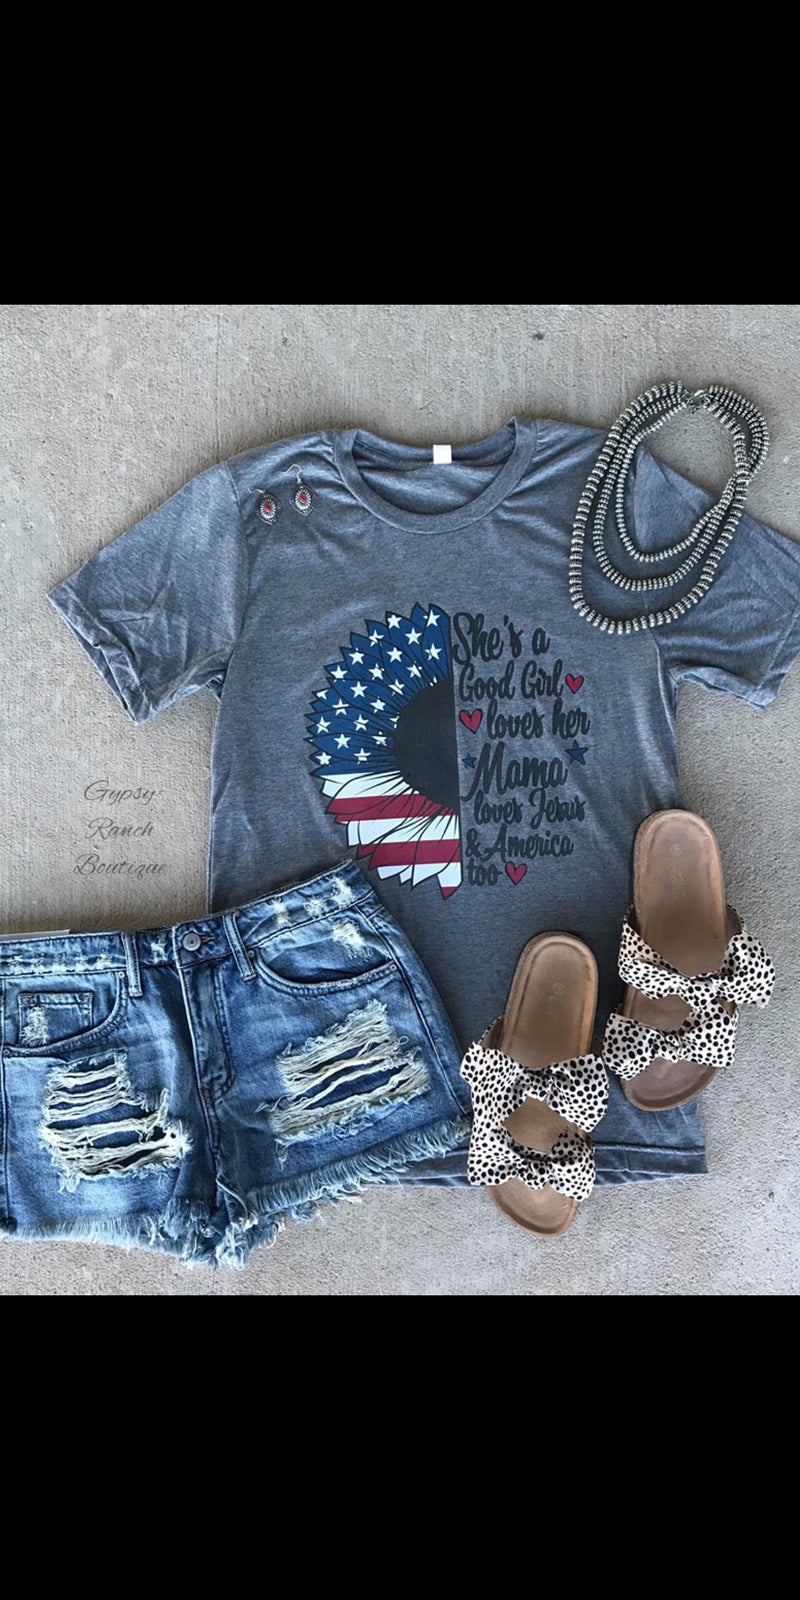 She's A Good Girl Loves Her Mama, Jesus & America Too Top - Also in Plus Size